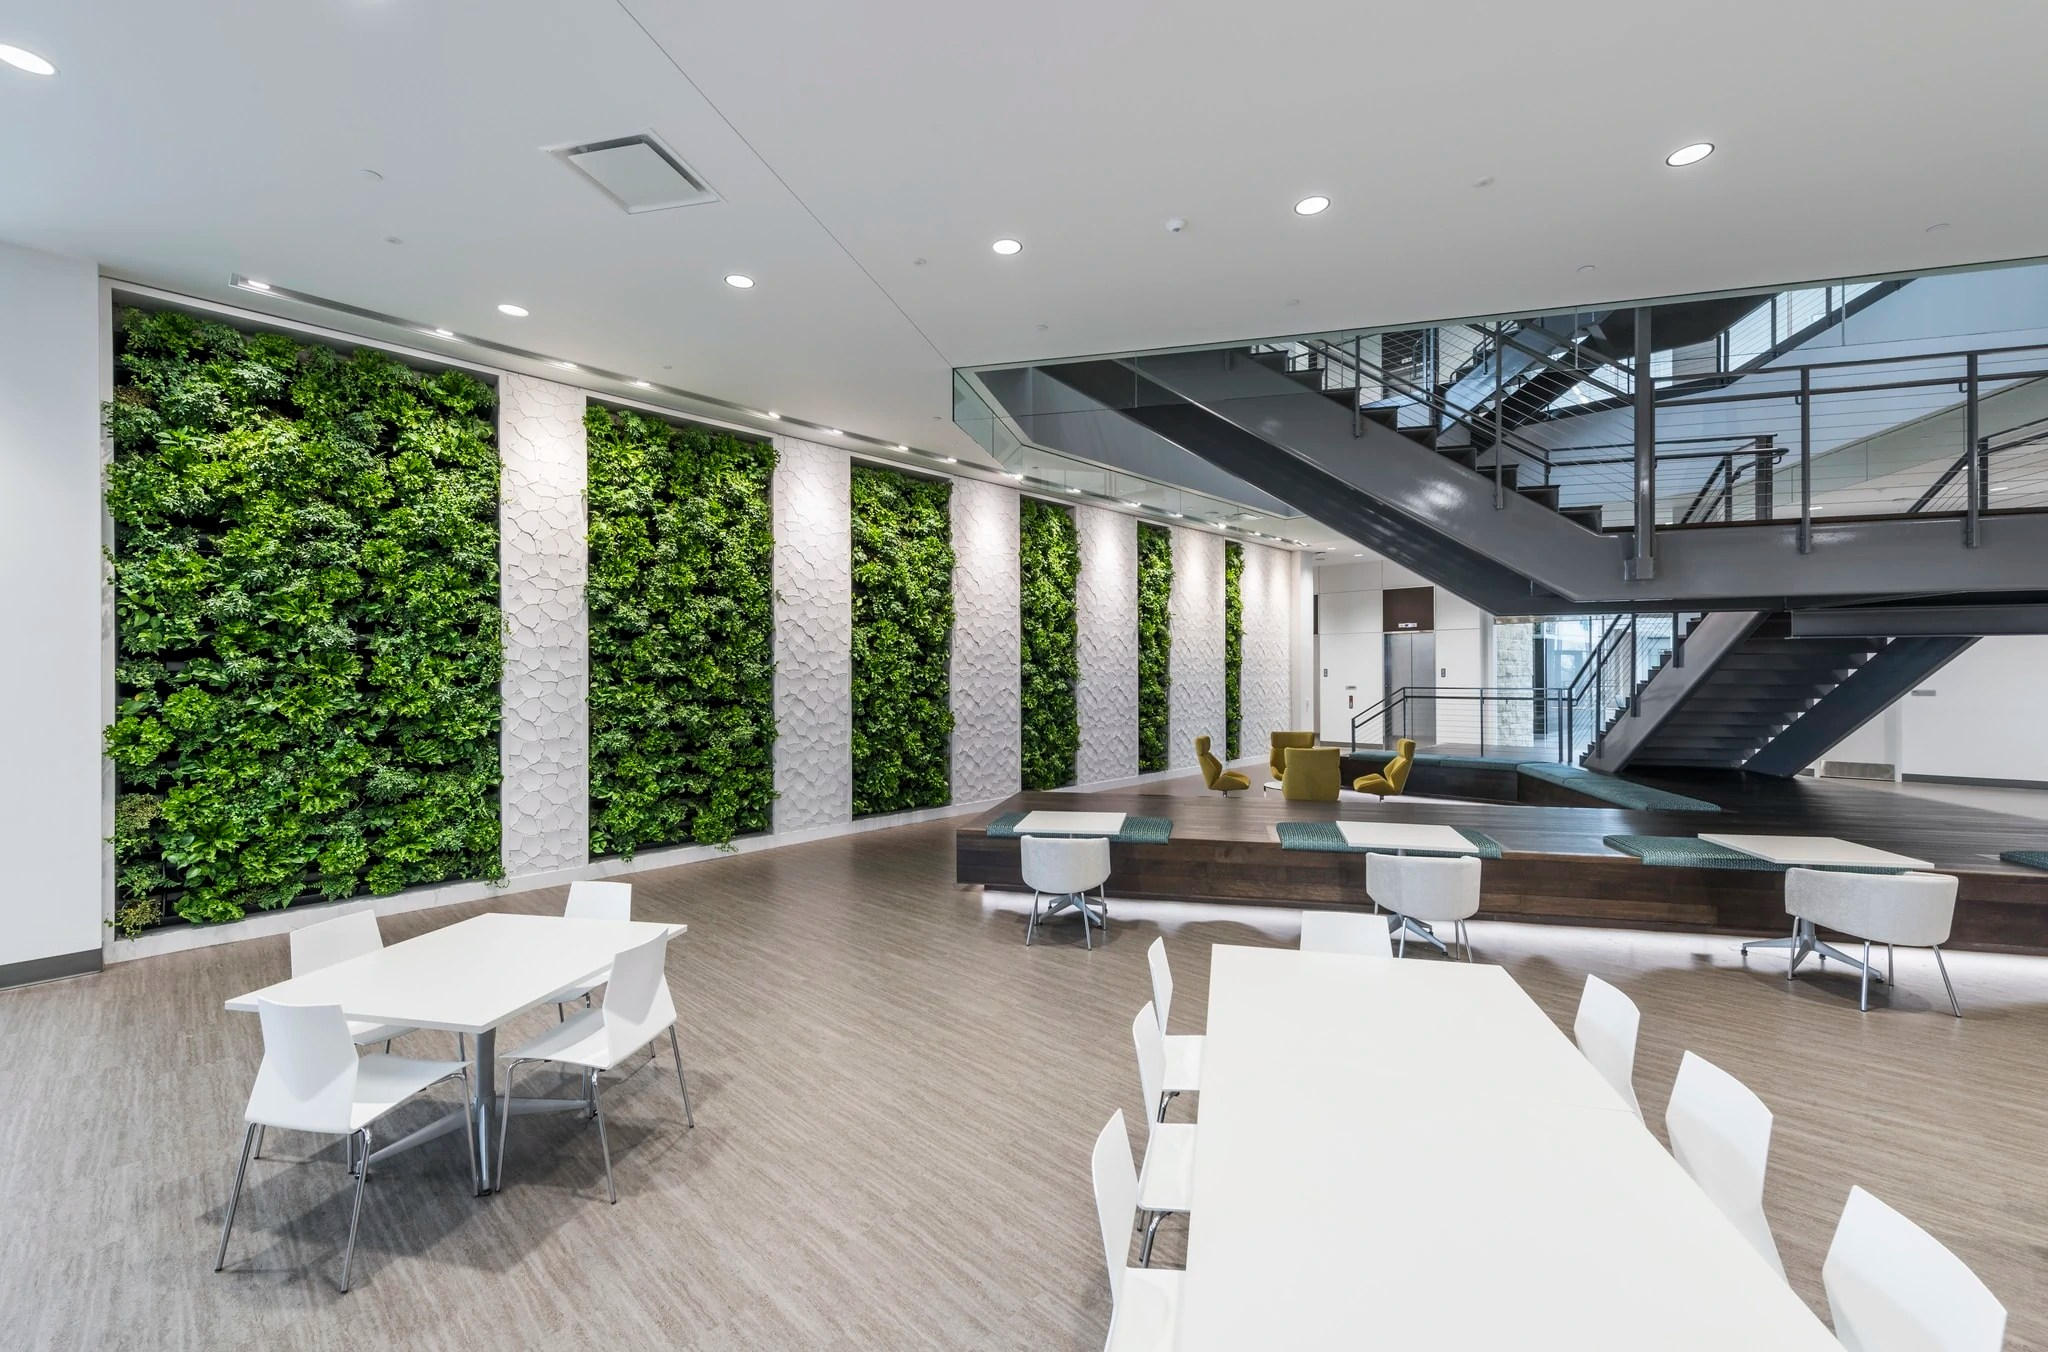 Green Walls Vertical Planting Systems